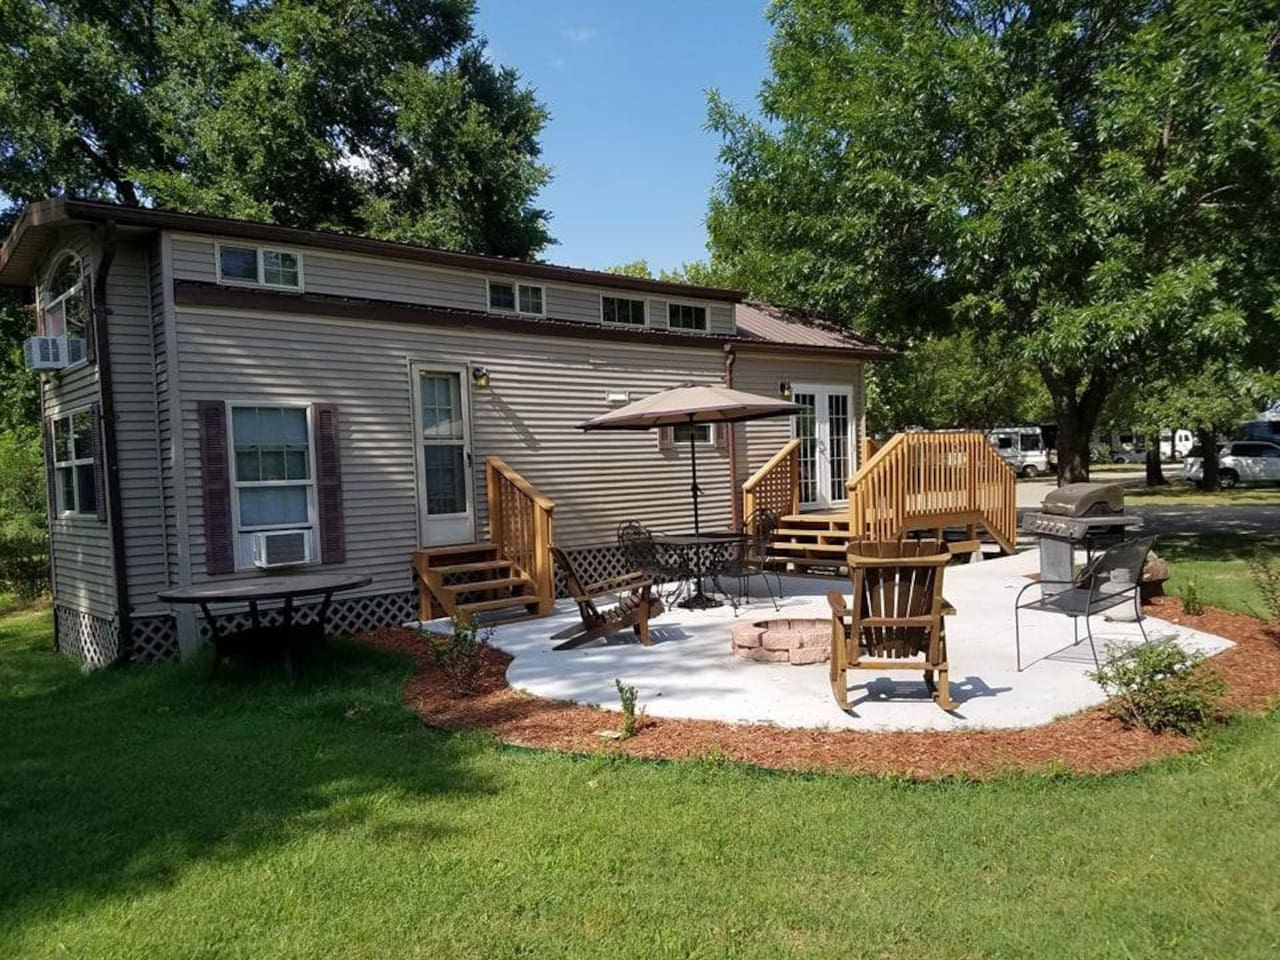 Beautiful outdoor space with gas grill, seating, stone fire pit, adirondack chairs and more.